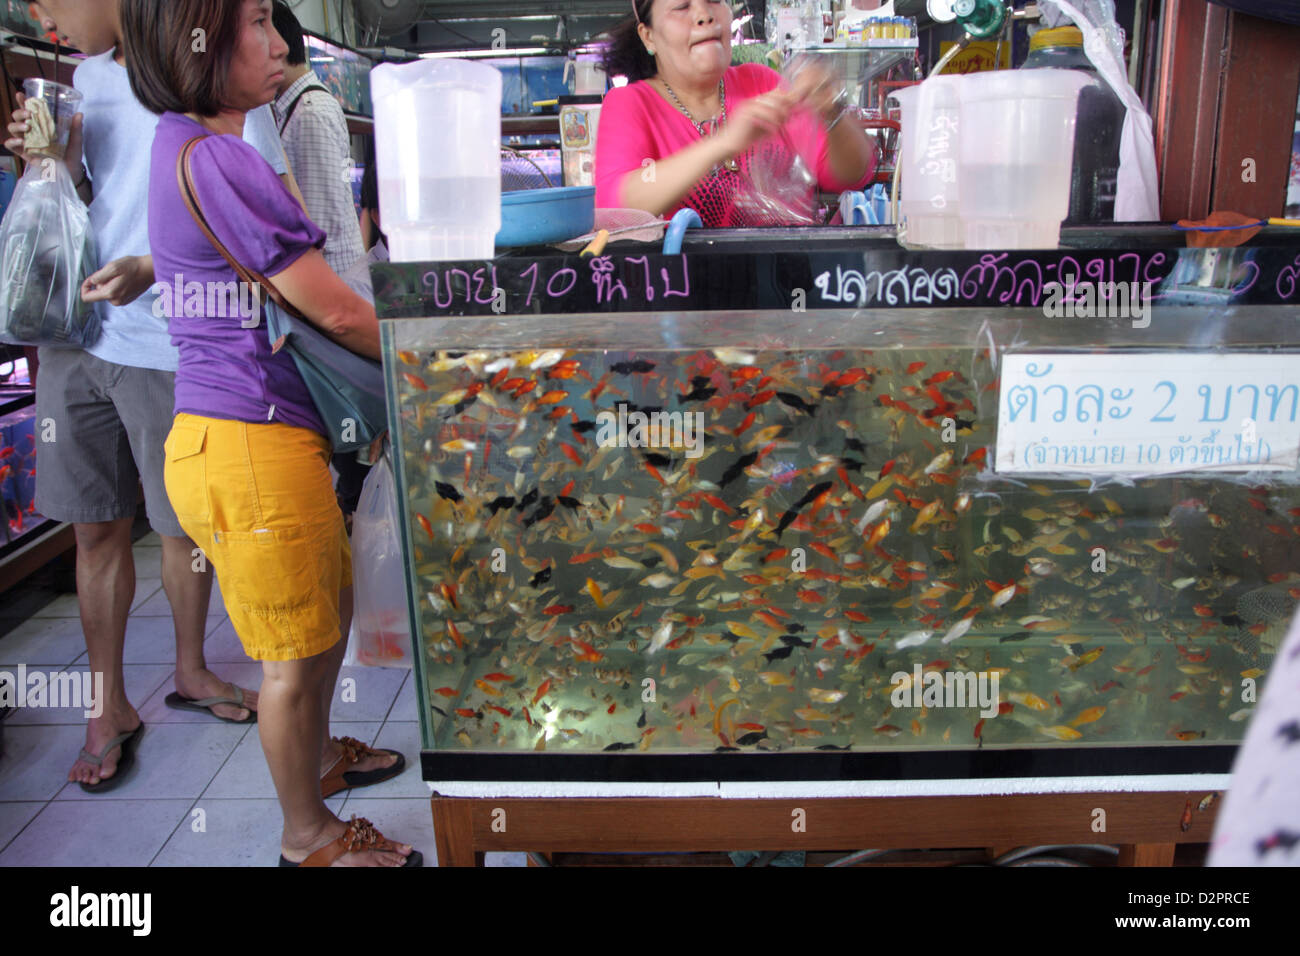 Fish for sale in pet zone at Chatuchak Weekend Market , Bangkok